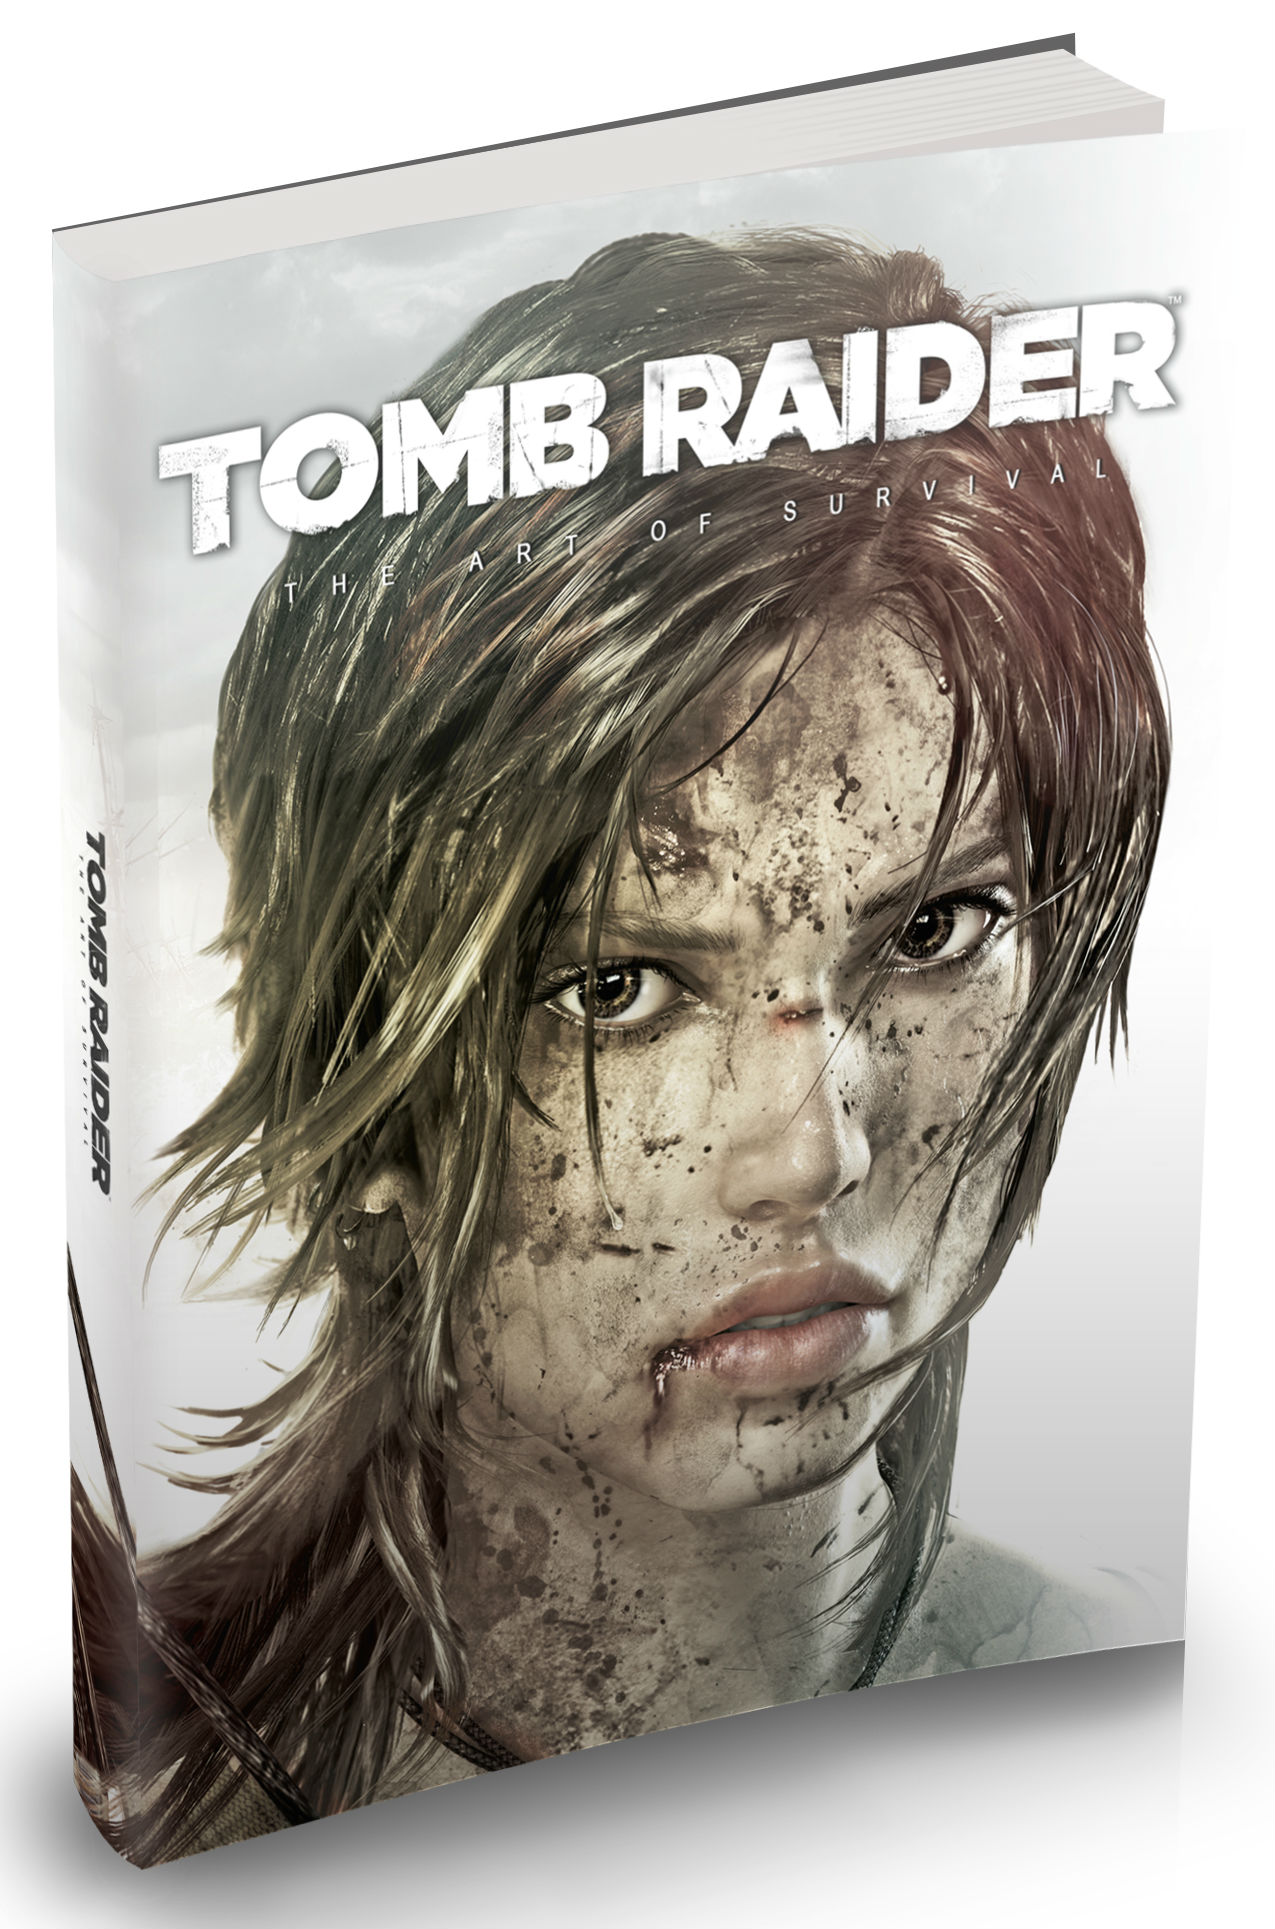 TOMB RAIDER ART BOOK